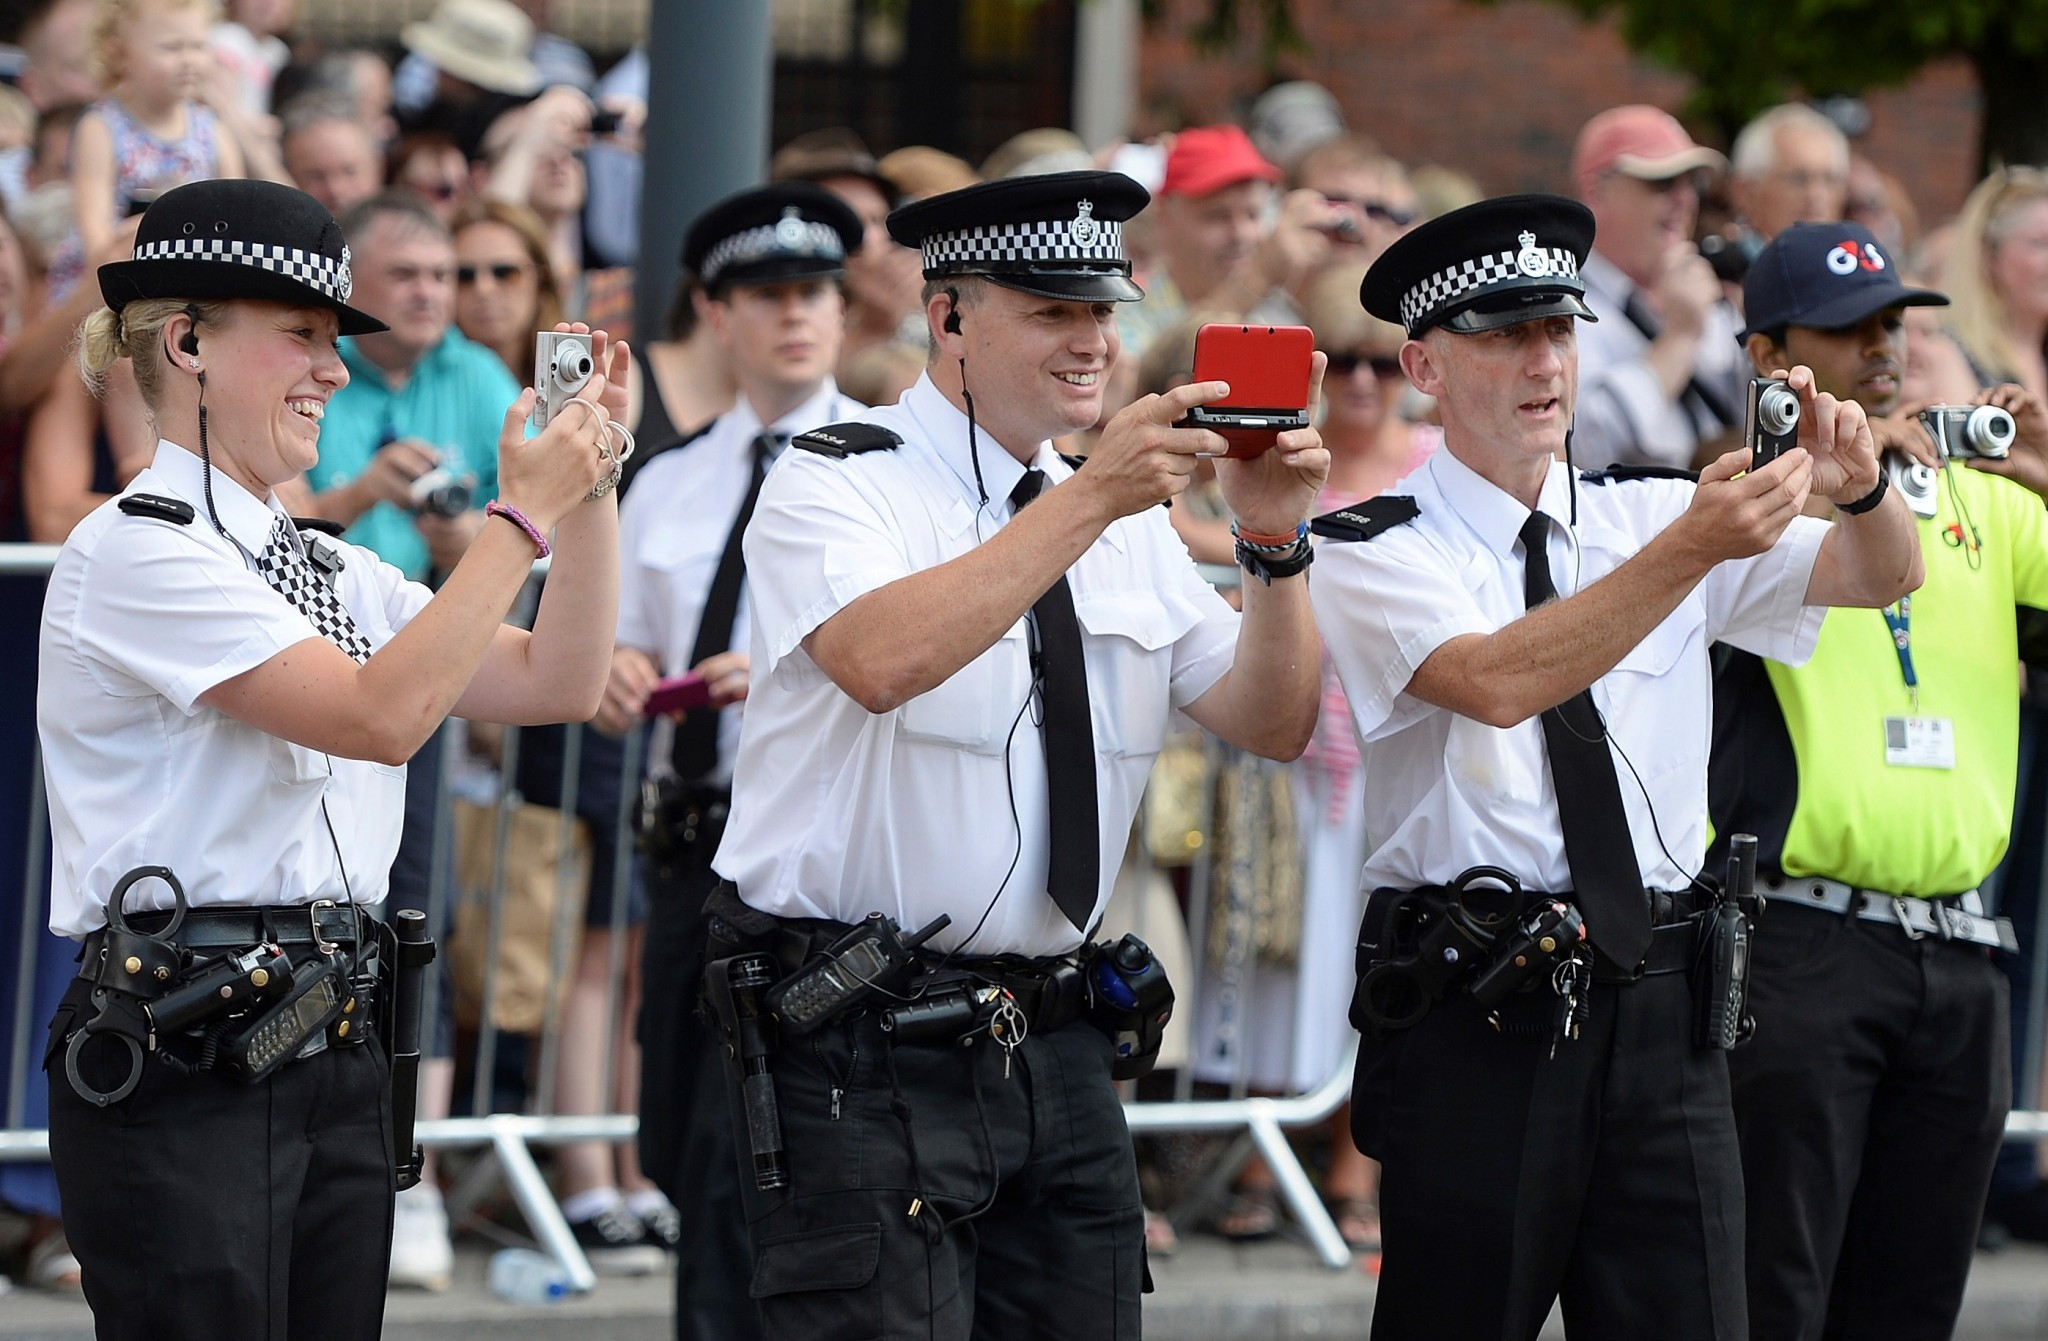 the best method of motivating police officers in police organizations Under the community policing model, police management community policing as the predominant way of to achieve community policing goals, officers have to be.